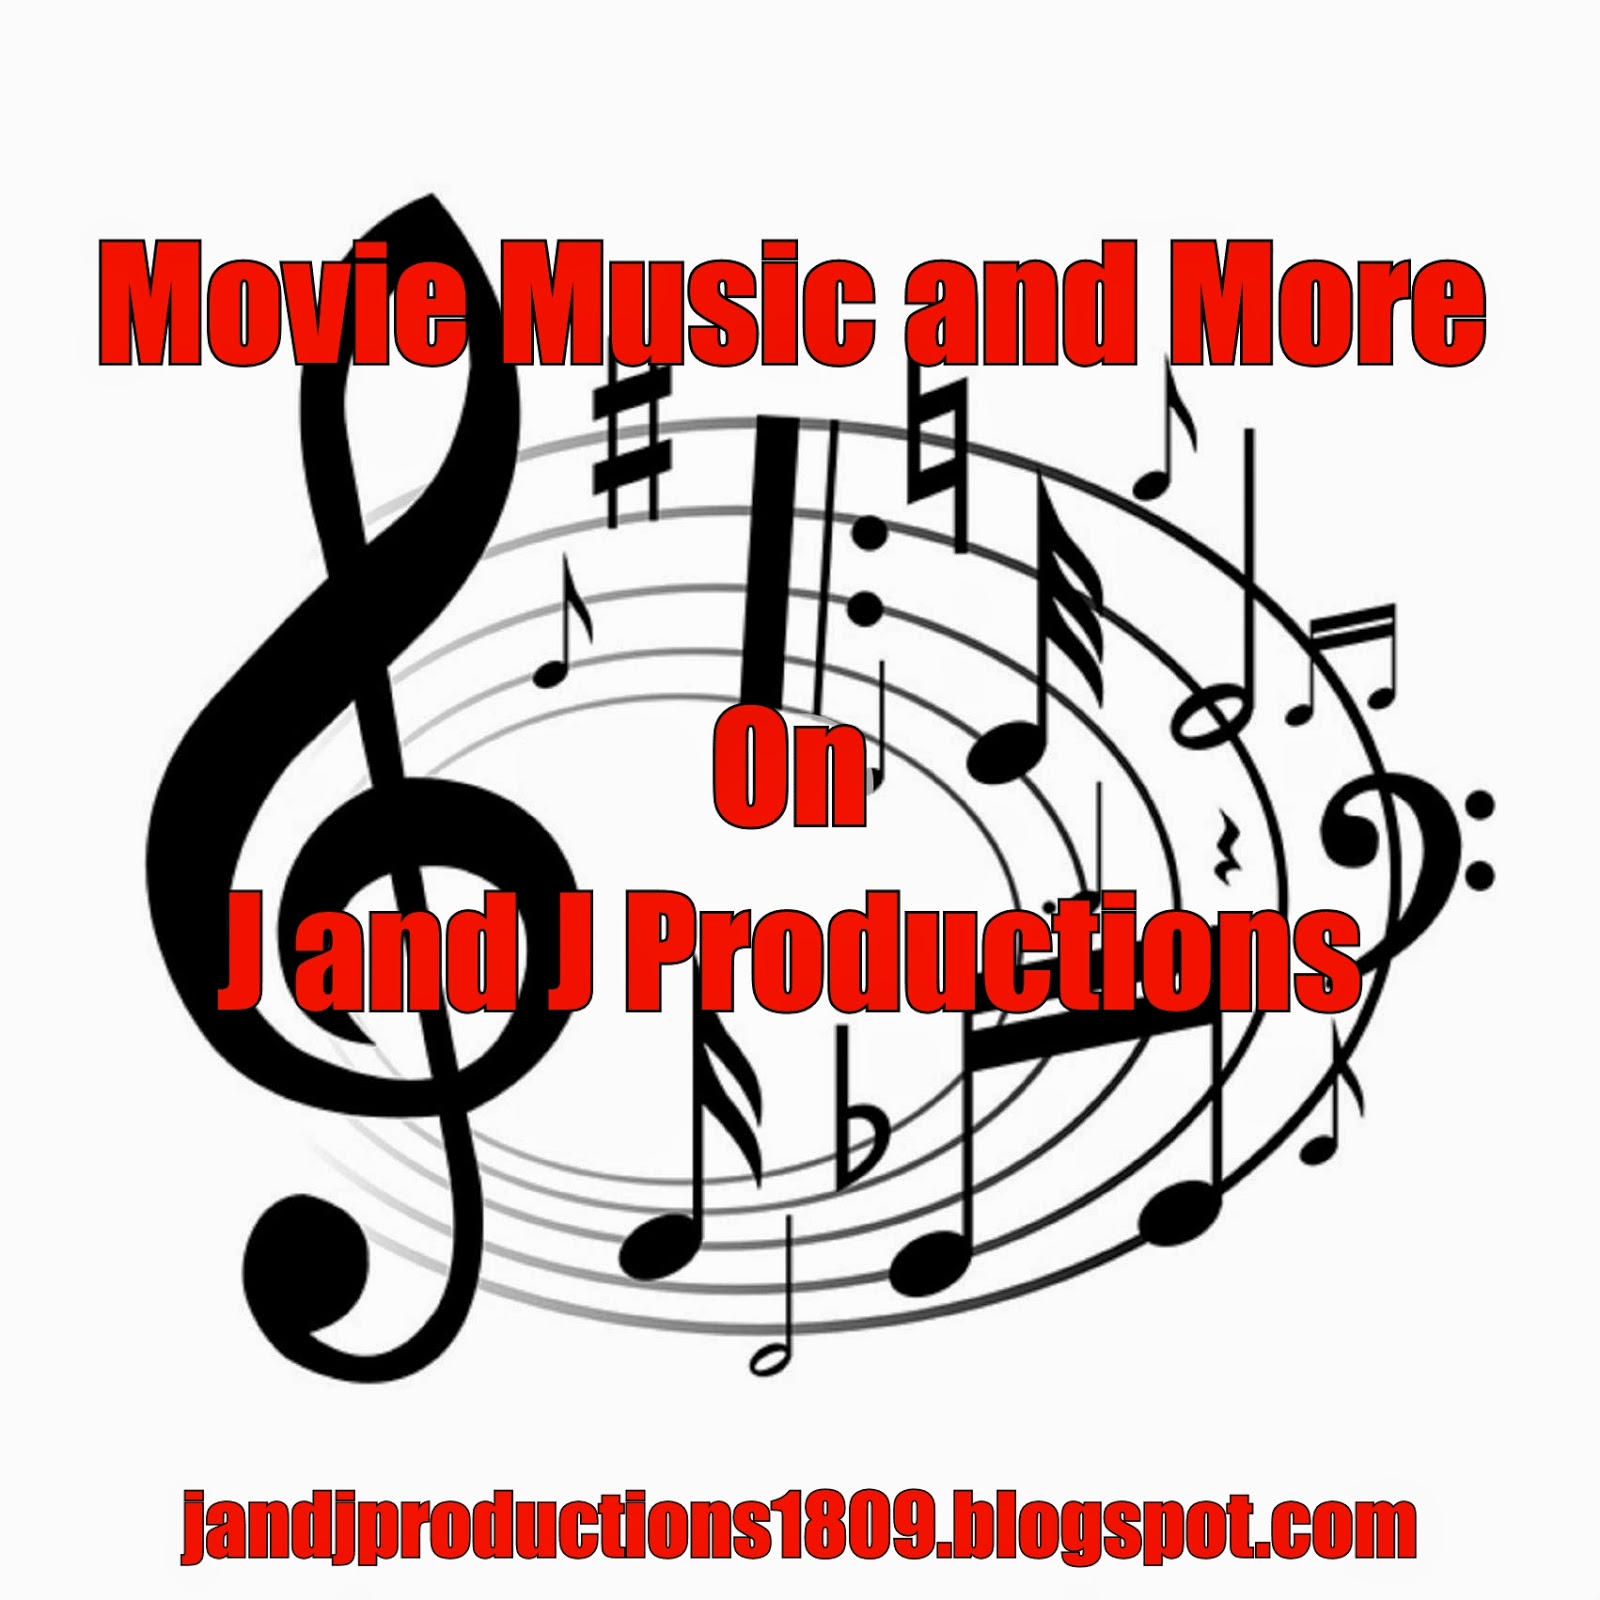 j and j productions movie music and more